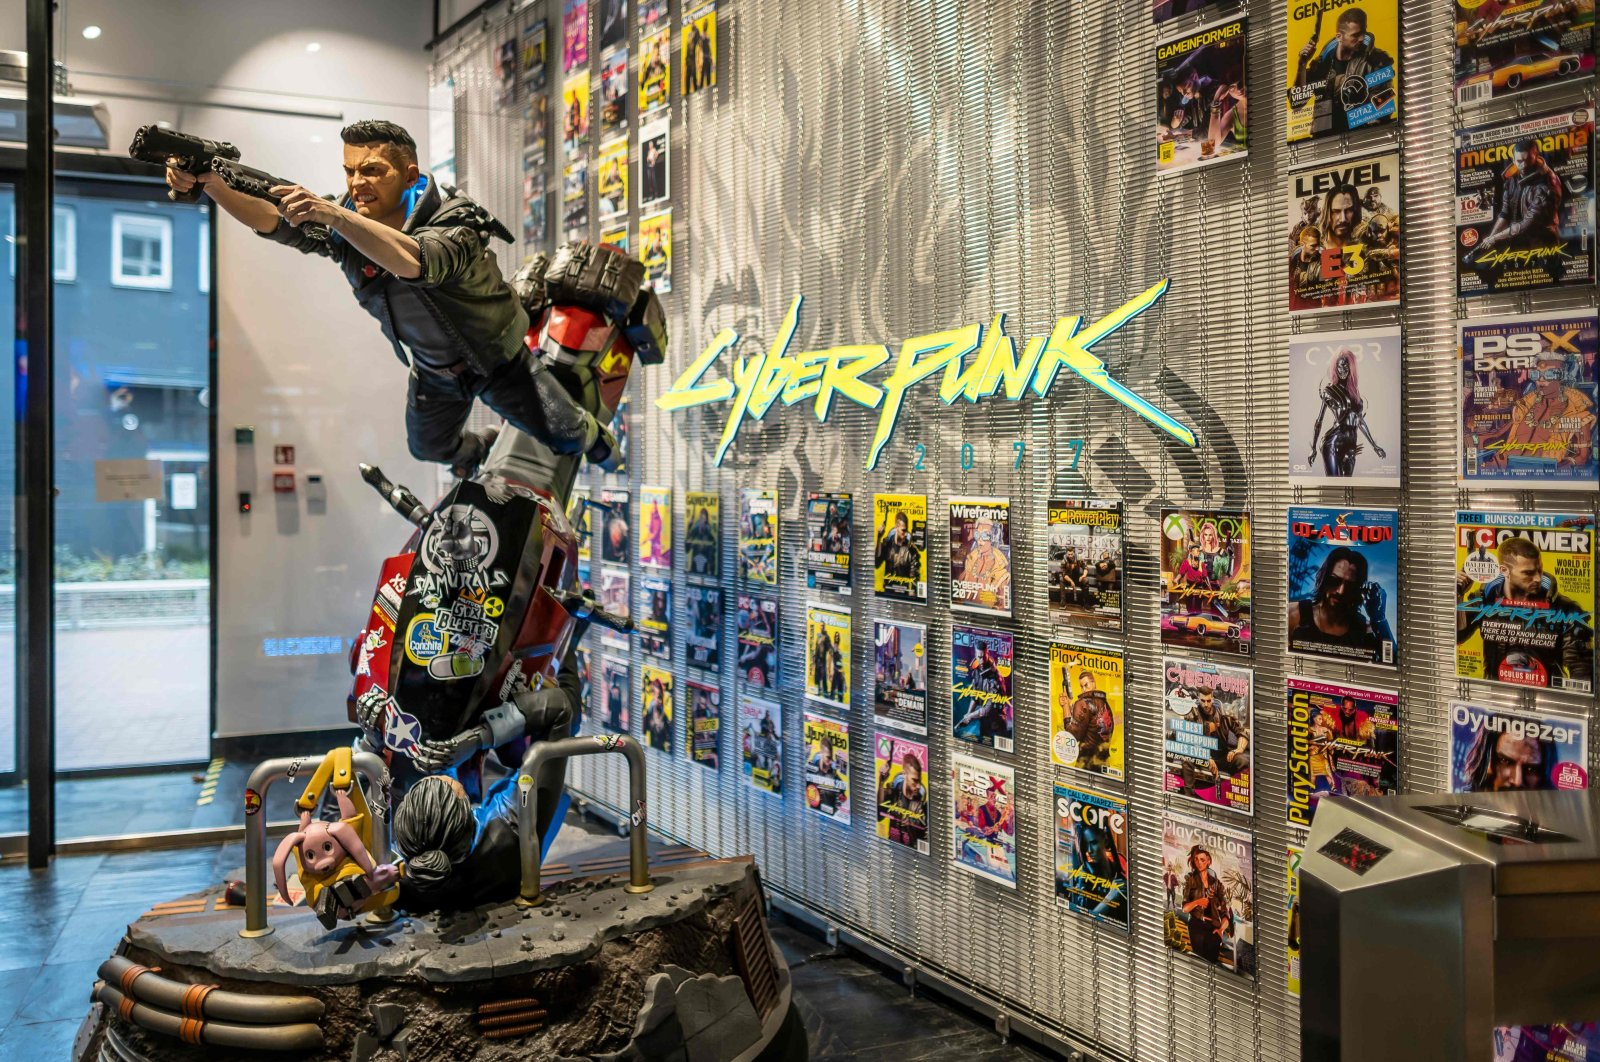 Cyberpunk character figures are seen at the headquarters of CD Projekt Red, the most prominent Polish game developer company in Warsaw, Poland on Dec. 4, 2020. (AFP Photo)